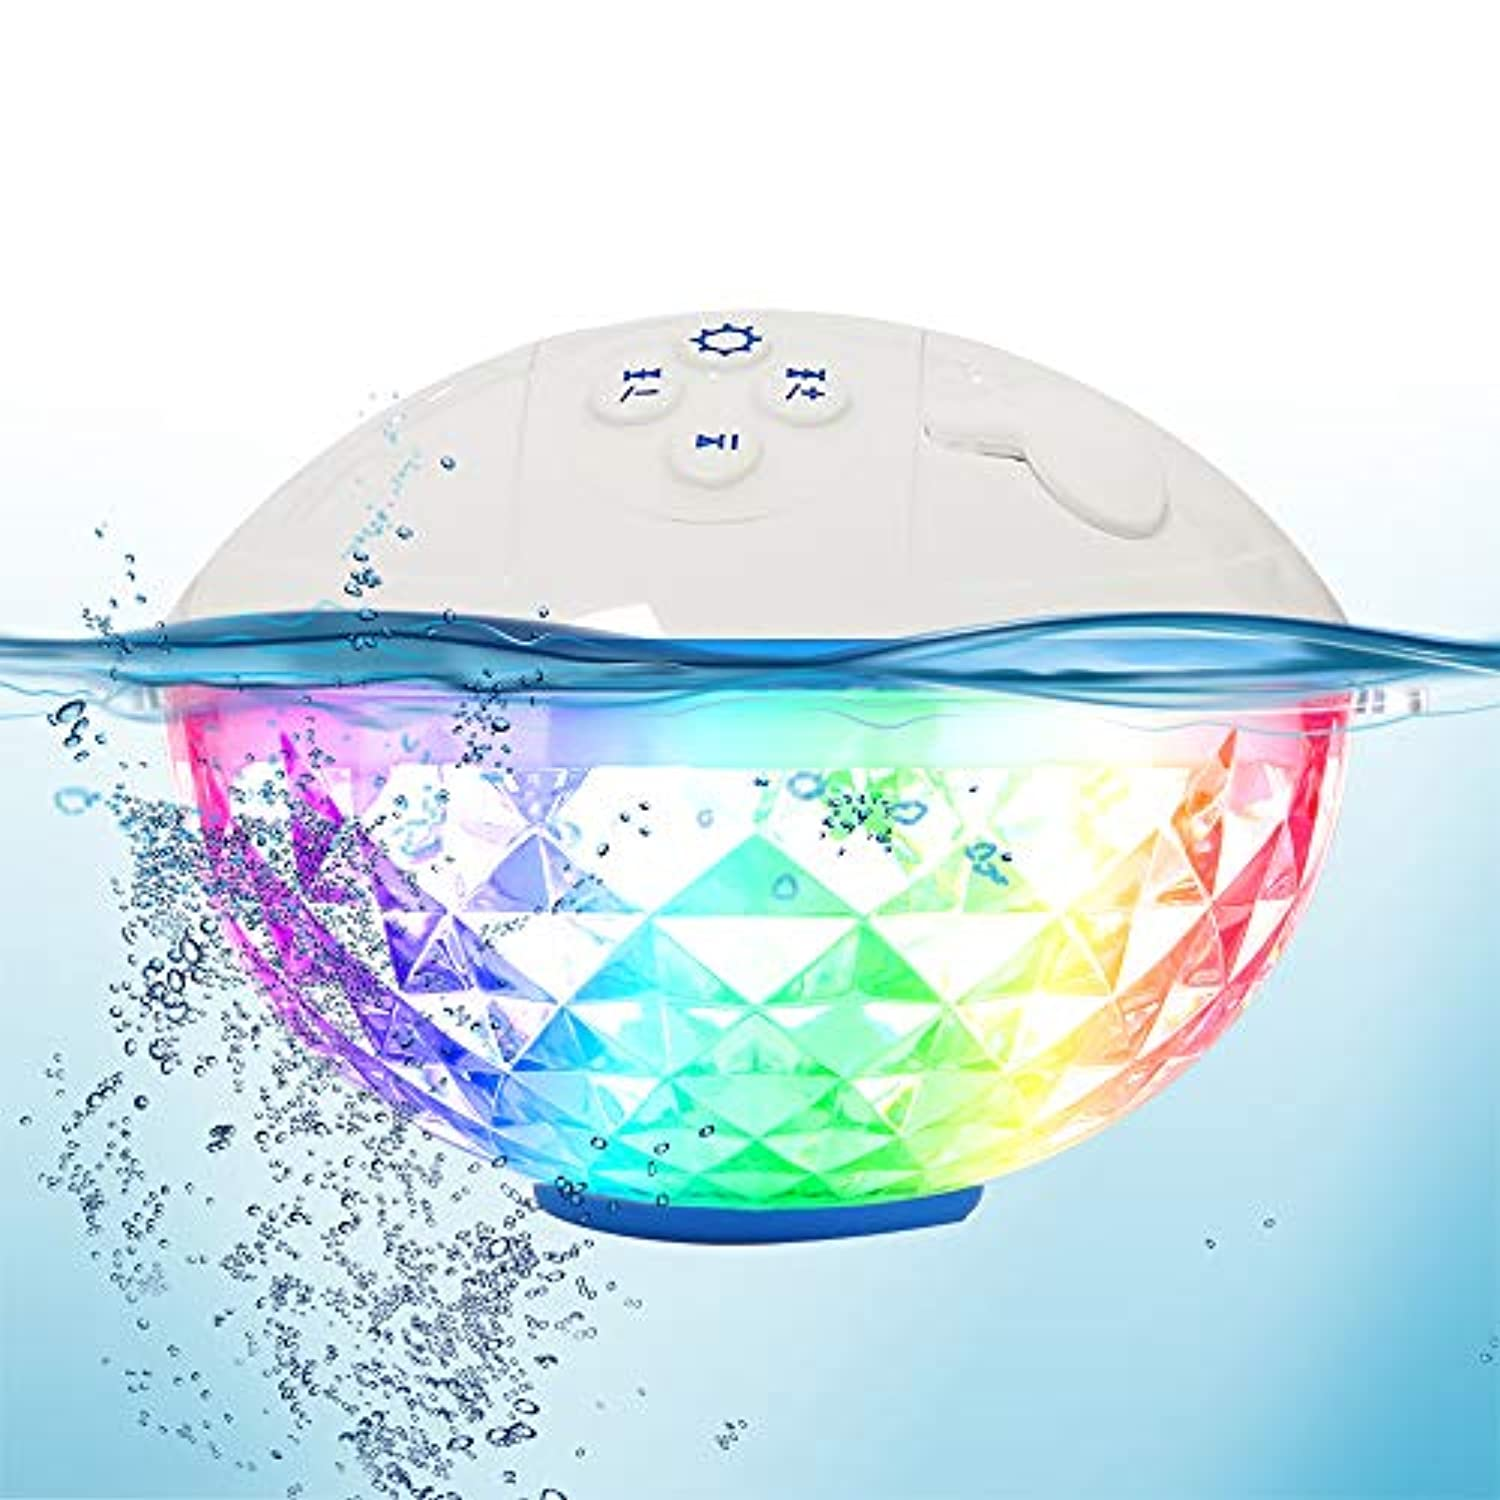 Bluetooth Speakers with Colorful Lights, Portable Speaker IPX7 Waterproof Floatable, Built-in Mic,Crystal Clear Stereo Sound Speakers Bluetooth Wireless 50ft Range for Home Shower Outdoors Pool Travel